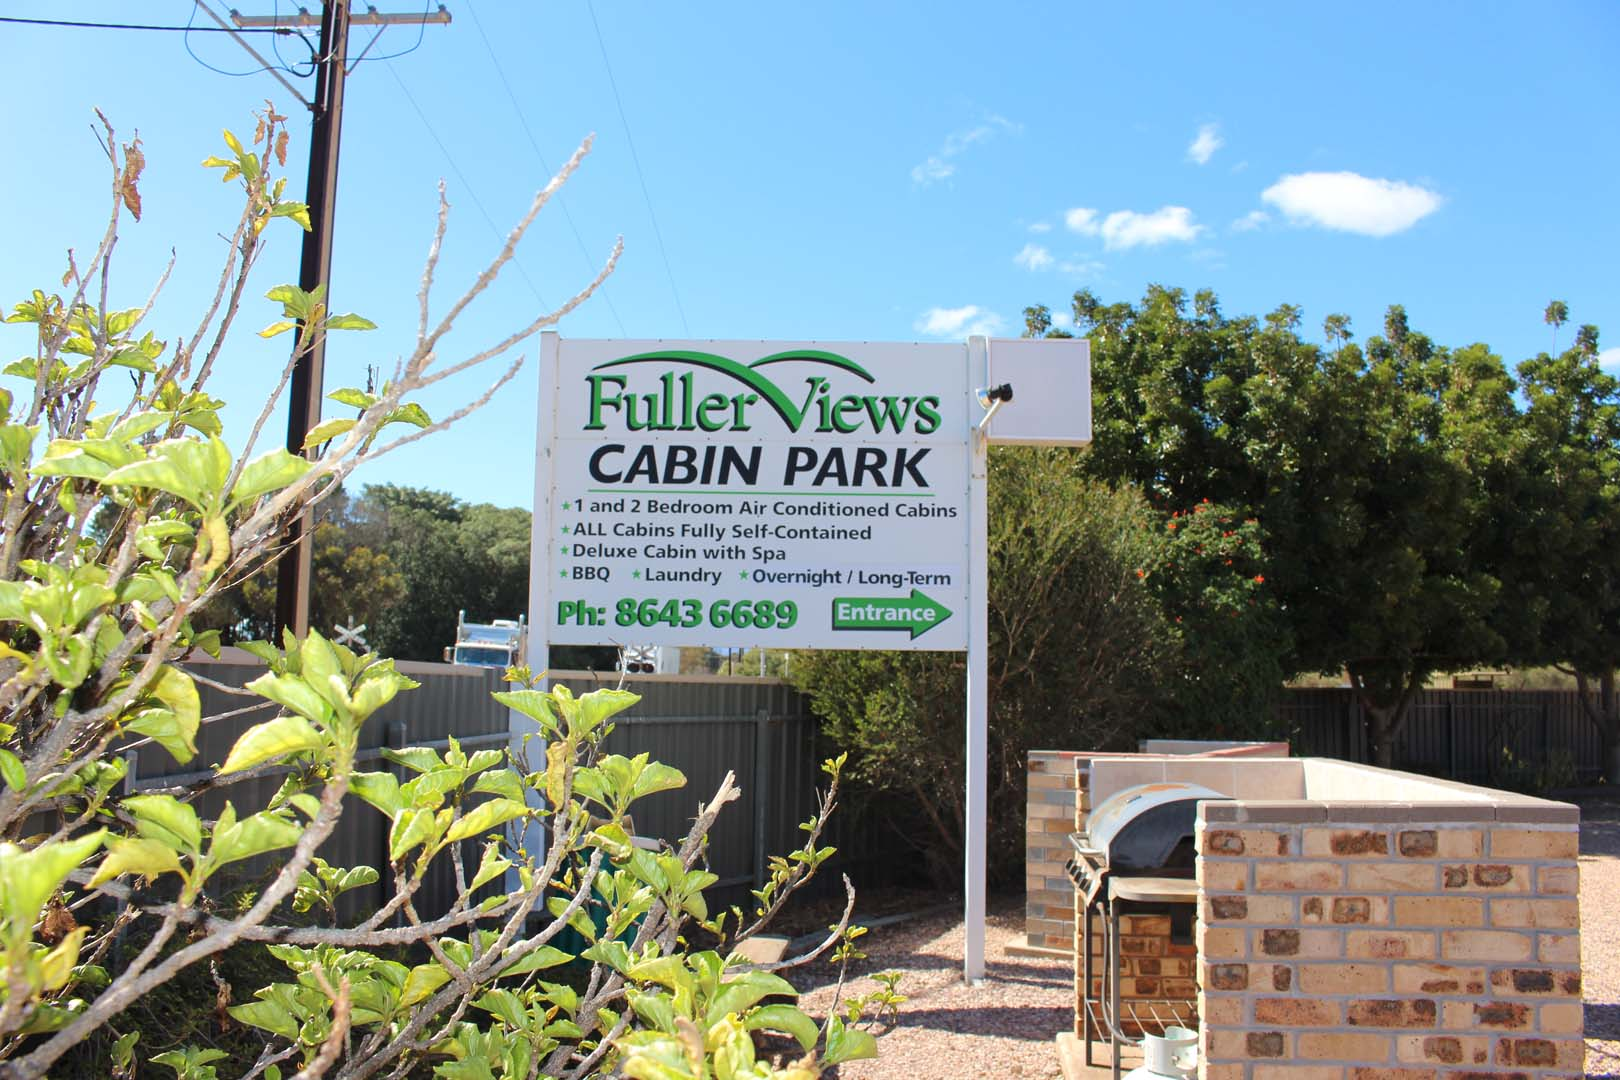 fuller-views-cabin-park-large-sign-plant